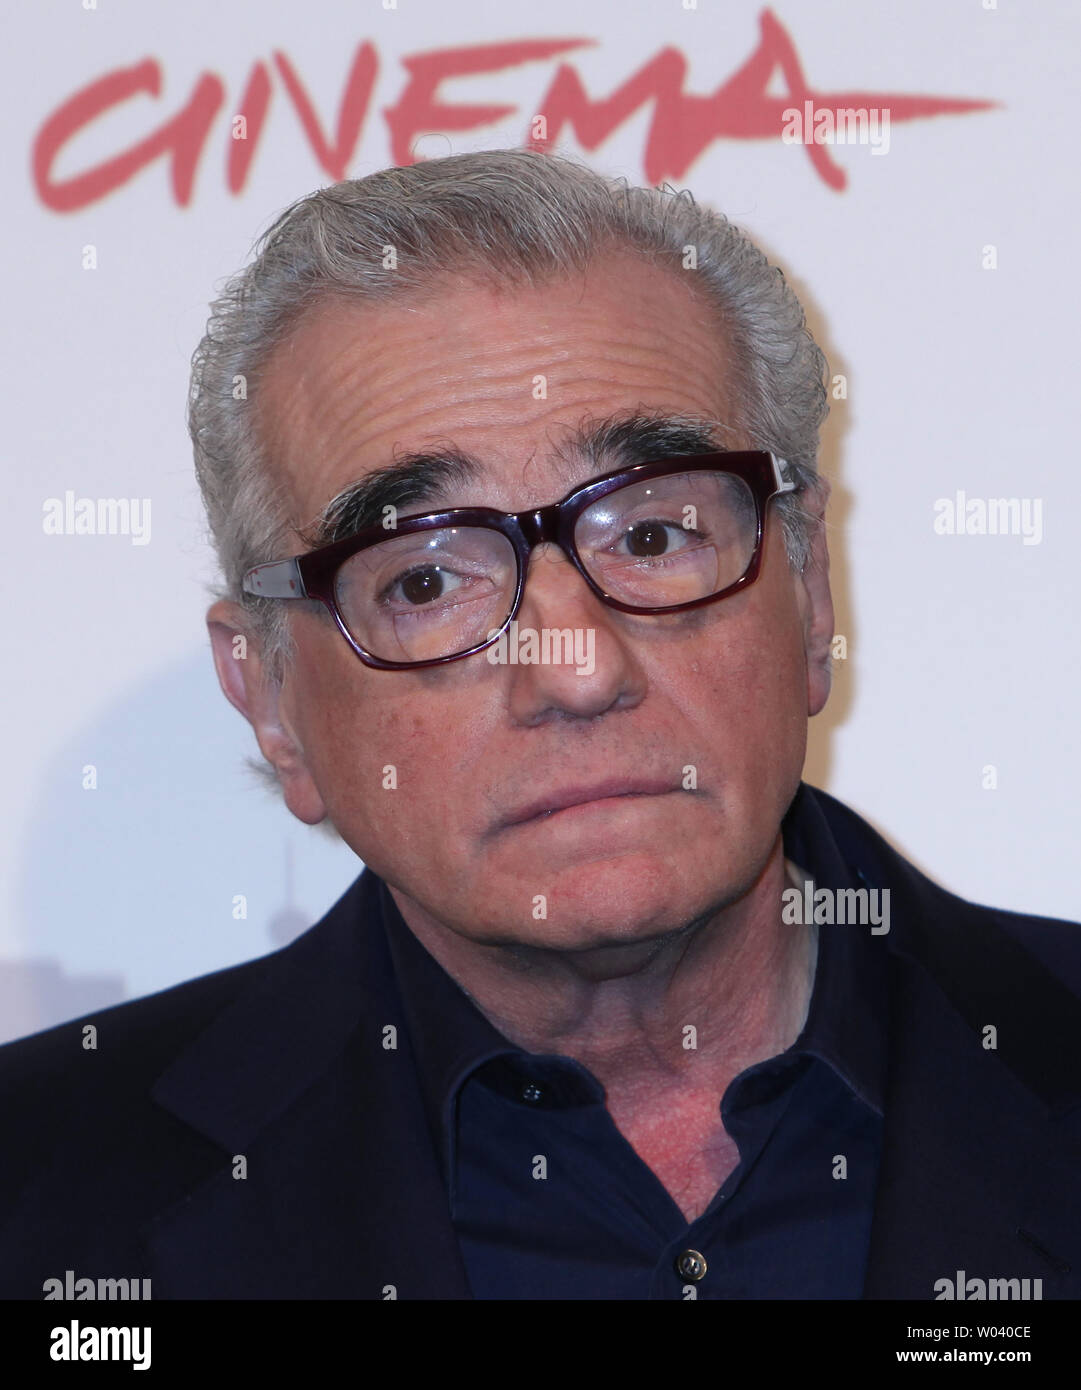 Martin Scorsese arrives at a photocall for the film 'La Dolce Vita' during the 5th Rome International Film Festival in Rome on October 30, 2010.  Scorsese was in Rome to officially present a digitally restored version of the 1960 classic film.   UPI/David Silpa - Stock Image